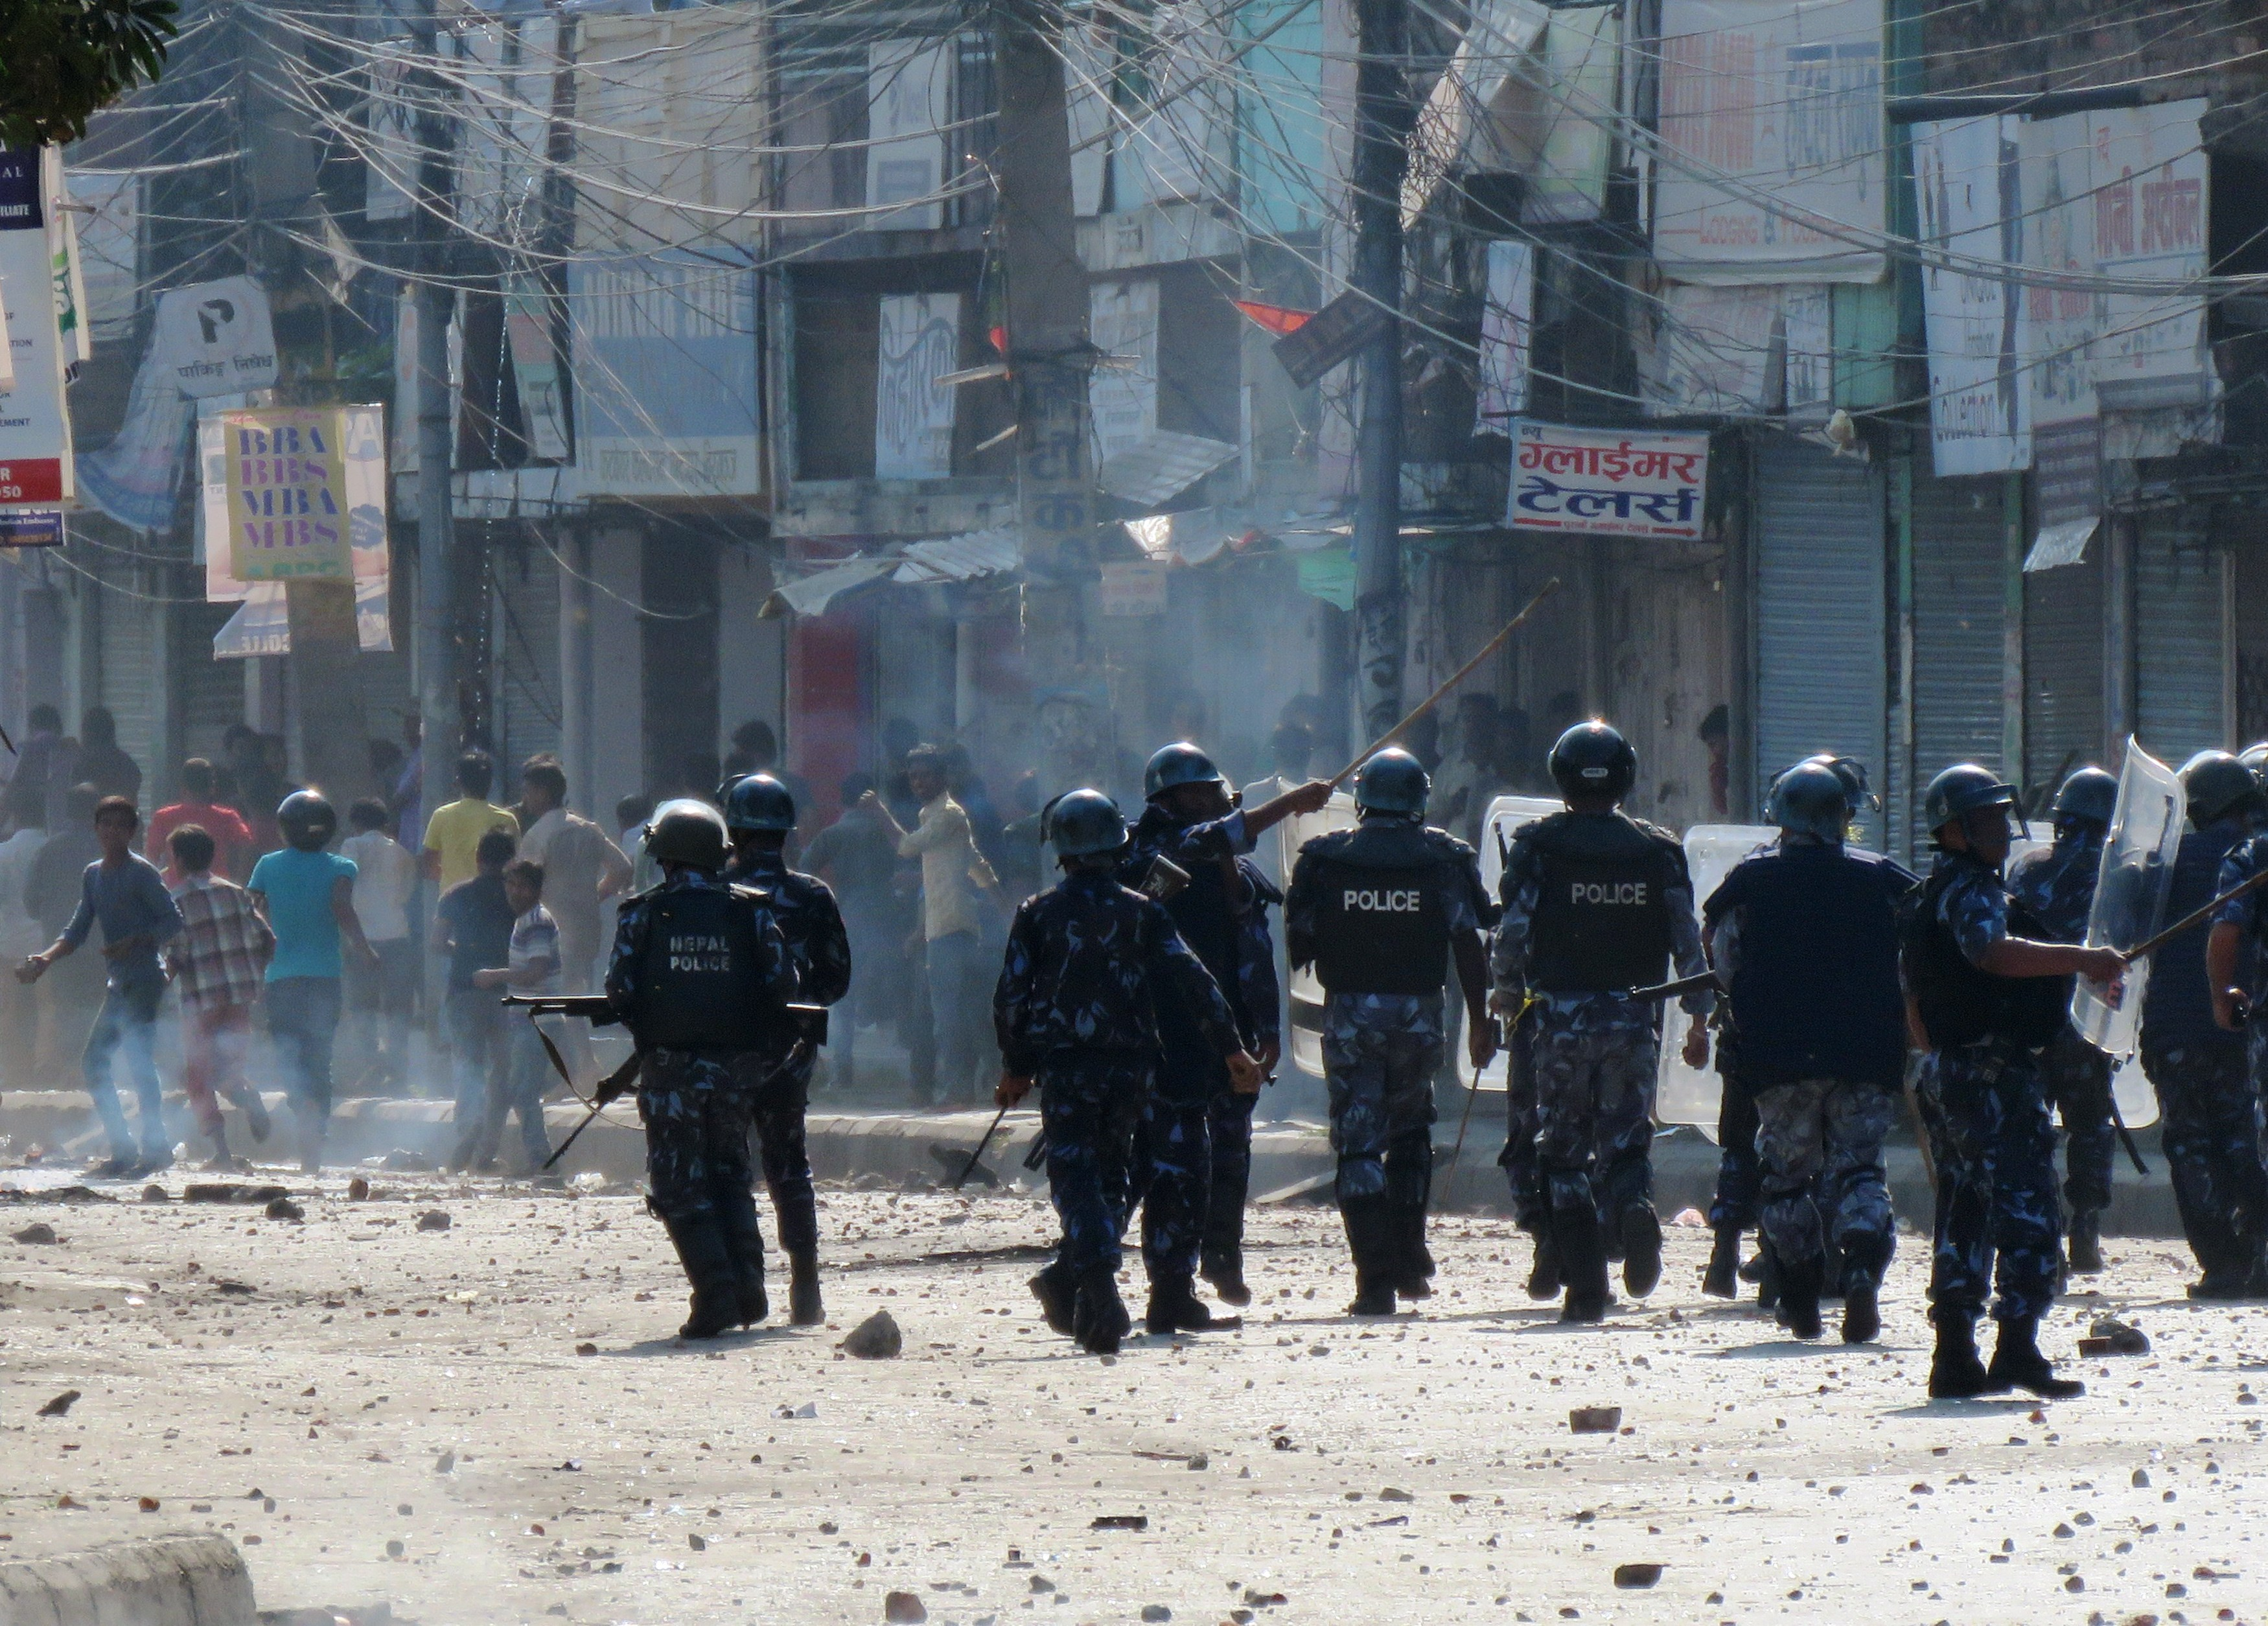 Nepalese police walk by protesters throwing rocks during clashes near the Nepal-India border at Birgunj, on Nov. 2, 2015. Police fired into a crowd of protesters trying to block a key border checkpoint and killed an Indian civilian as anger over a new constitution boiled over.